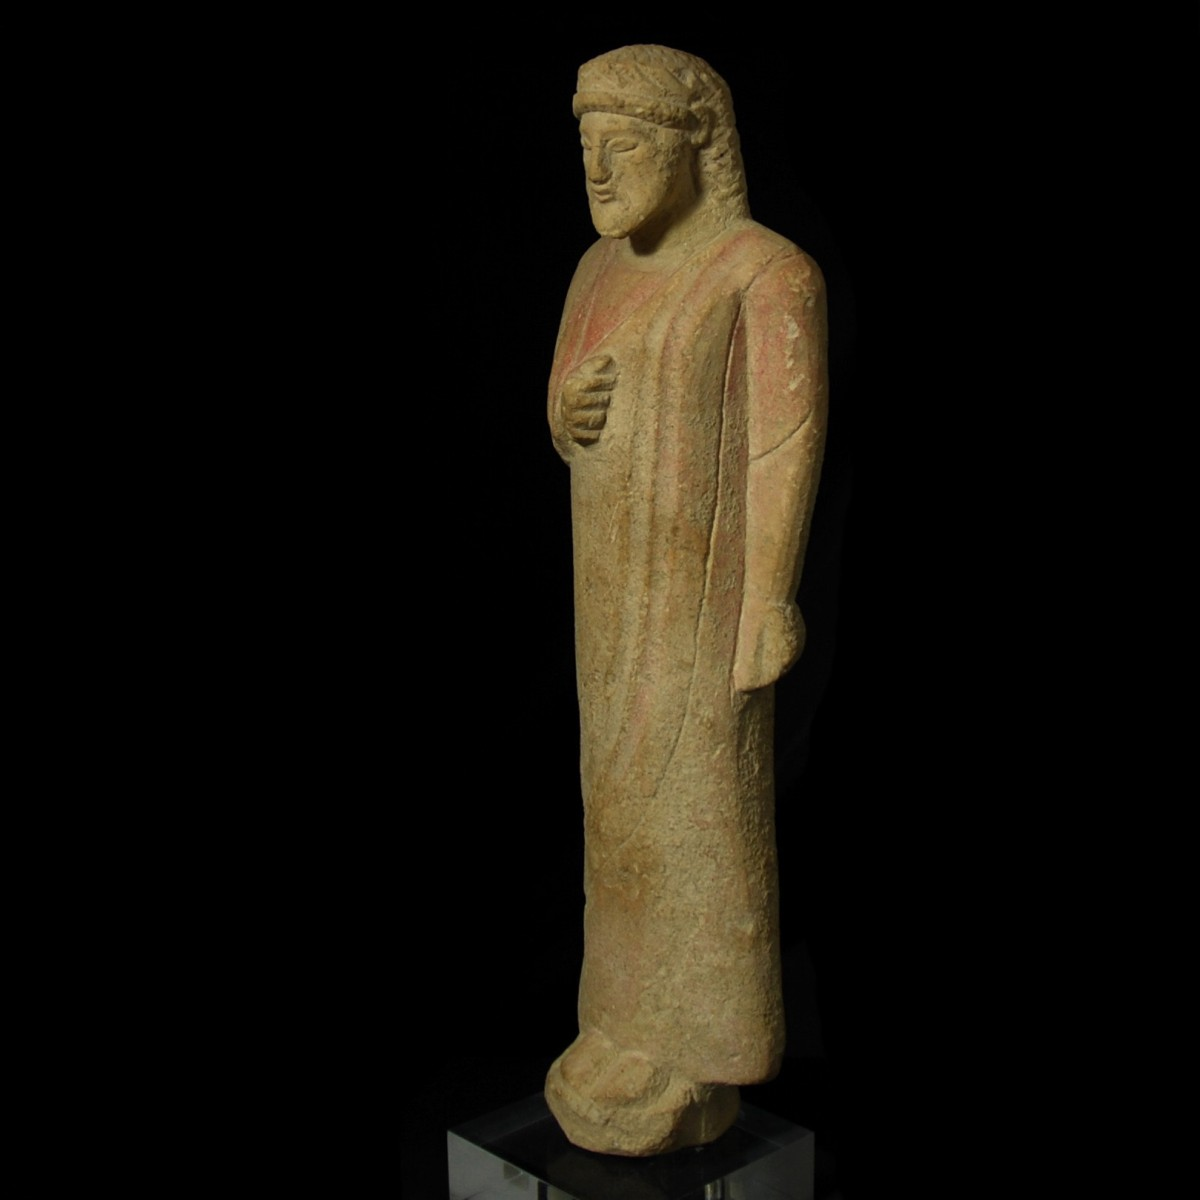 Cypriot limestone statue of a votary half left